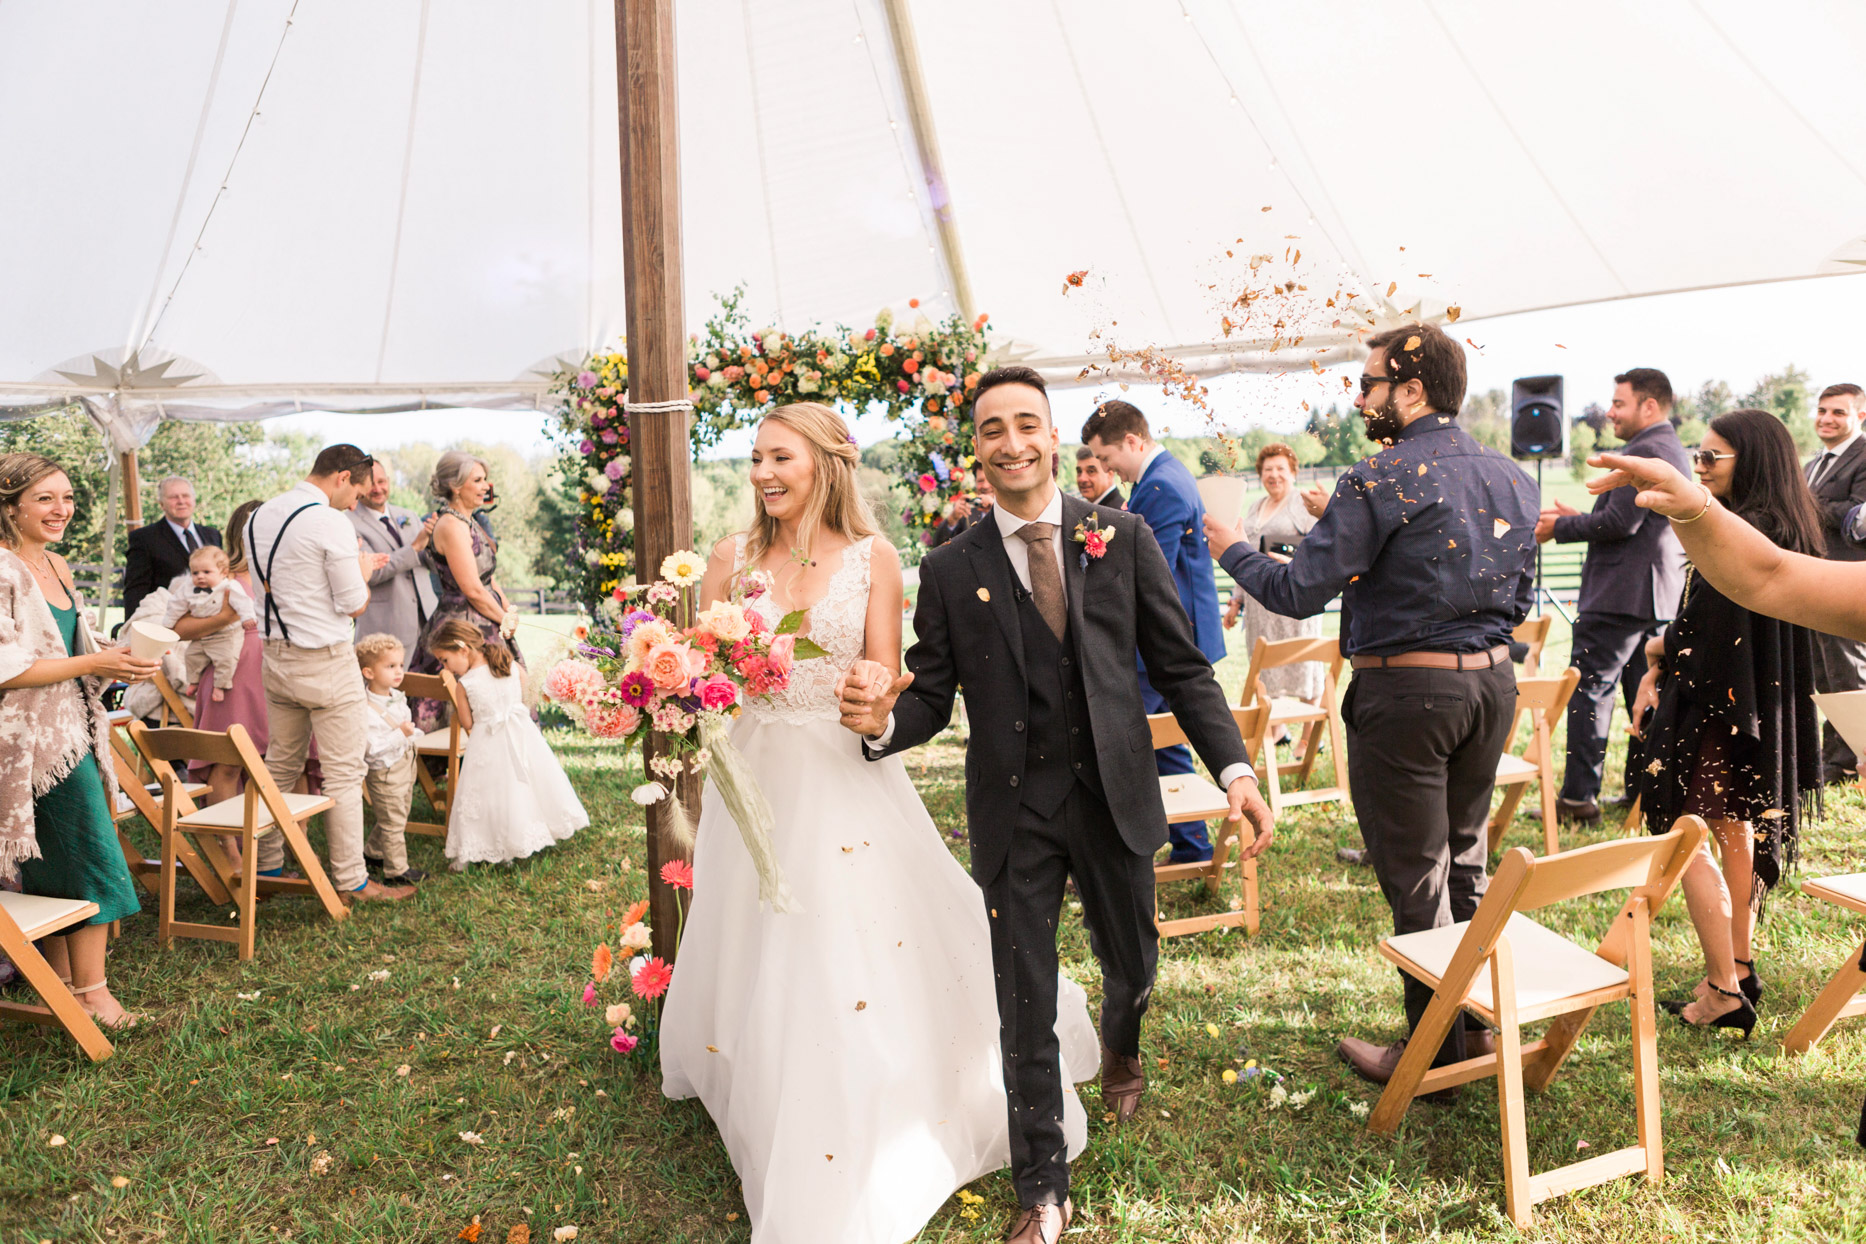 bride and groom smiling during recessional showered in flower petals